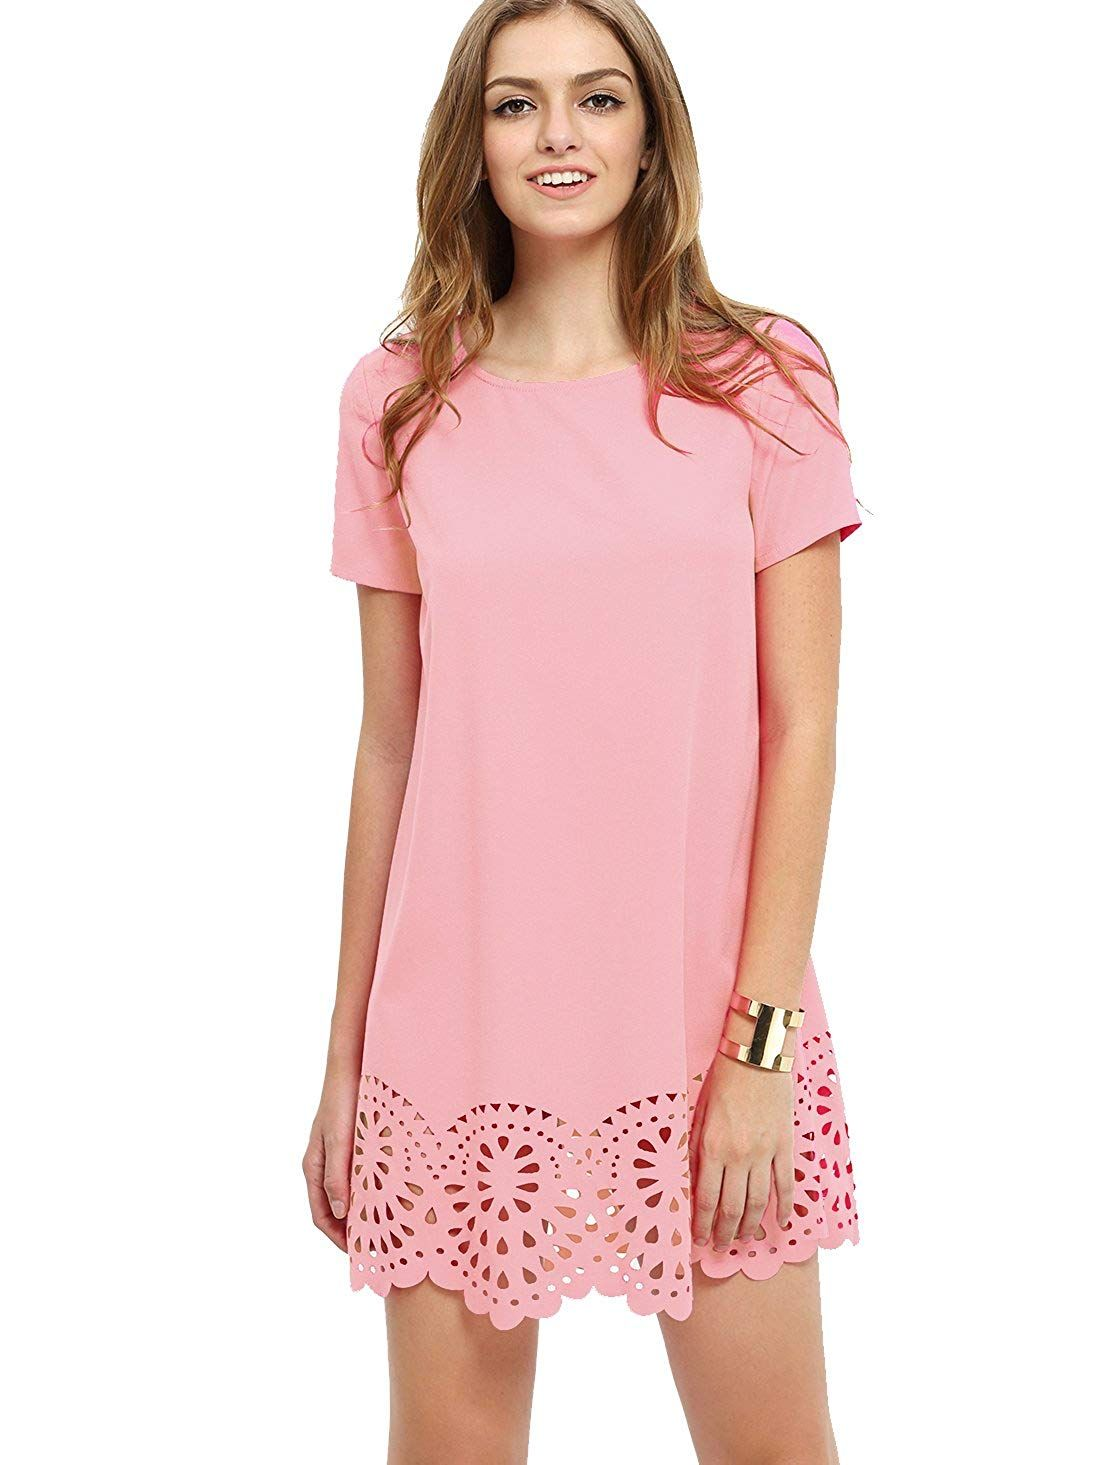 5f61c2e50c SheIn Women's Crew Neck Short Sleeve Hollow Shift Dress at Amazon Women's  Clothing store: